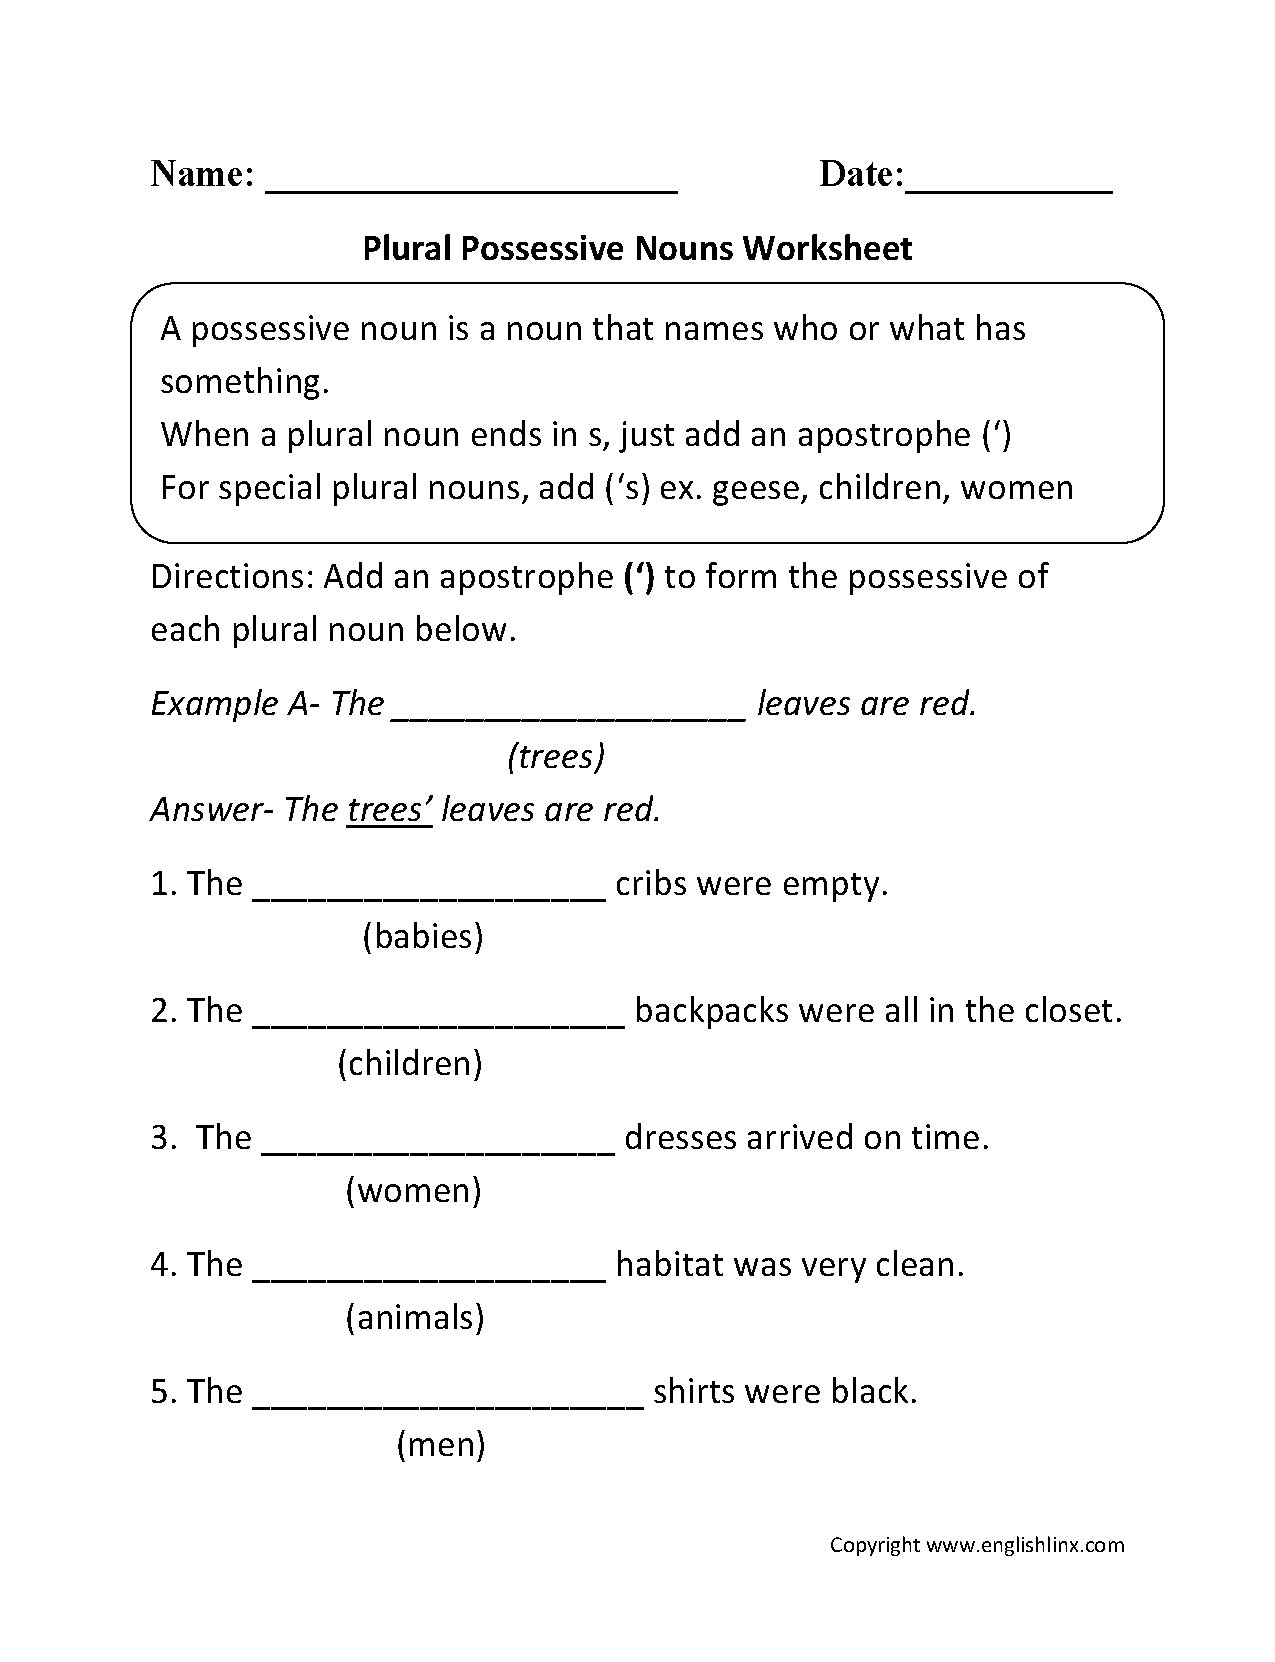 Aldiablosus  Personable Nouns Worksheets  Possessive Nouns Worksheets With Entrancing Possessive Nouns Worksheets With Astonishing Smart Goals For Students Worksheet Also Alphabet Worksheet For Preschool In Addition Free Visual Perceptual Worksheets And Interactive Math Worksheets As Well As J Worksheets For Preschool Additionally Food Groups Worksheet From Englishlinxcom With Aldiablosus  Entrancing Nouns Worksheets  Possessive Nouns Worksheets With Astonishing Possessive Nouns Worksheets And Personable Smart Goals For Students Worksheet Also Alphabet Worksheet For Preschool In Addition Free Visual Perceptual Worksheets From Englishlinxcom